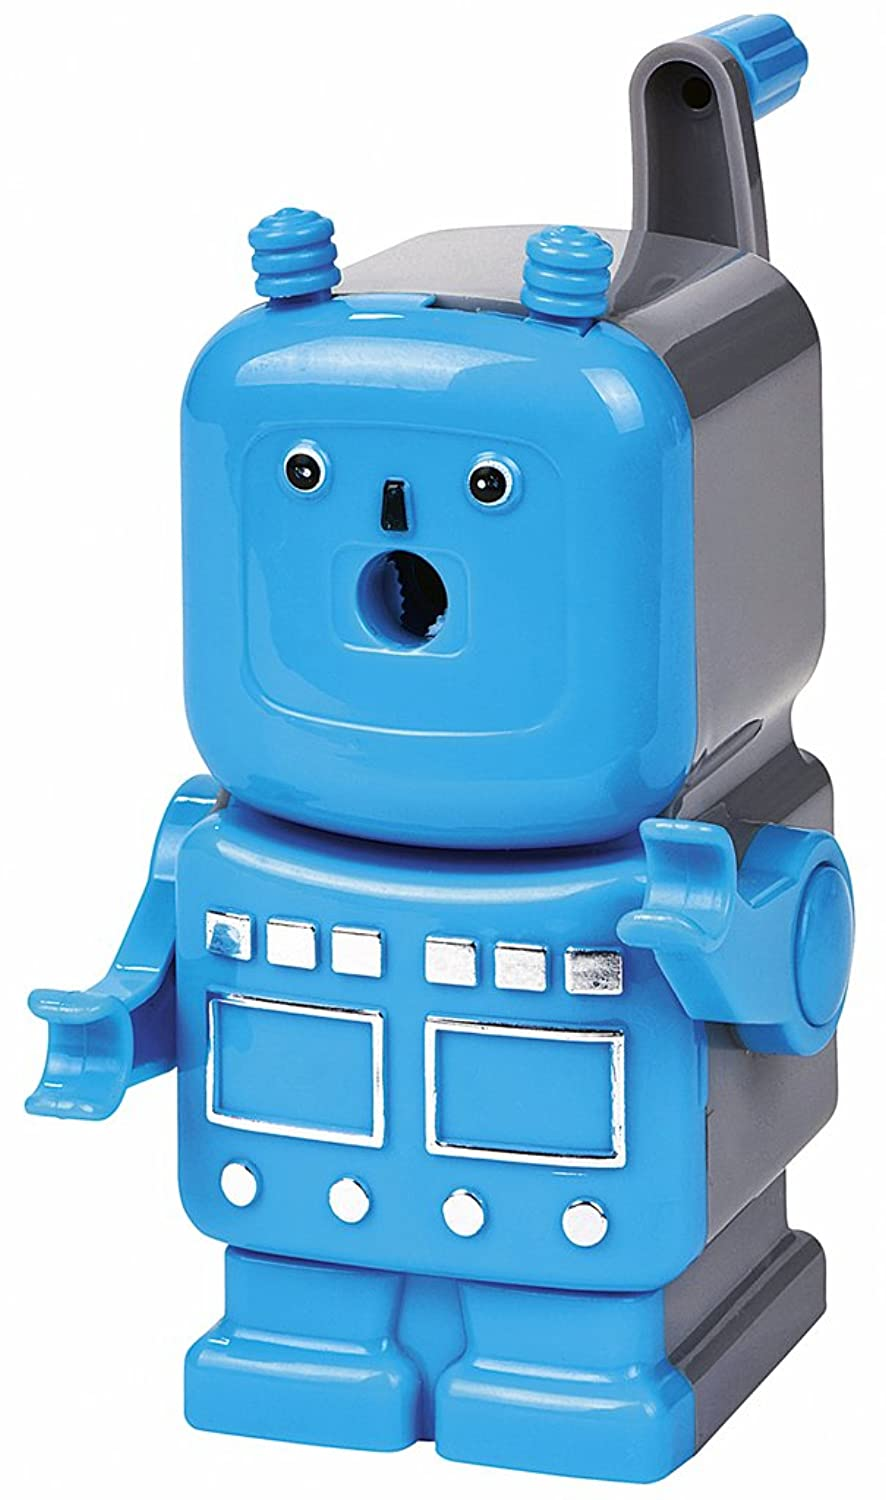 Moses. 26078?Robot Metal Pencil Sharpener Spitzwerk ealmjf7925826